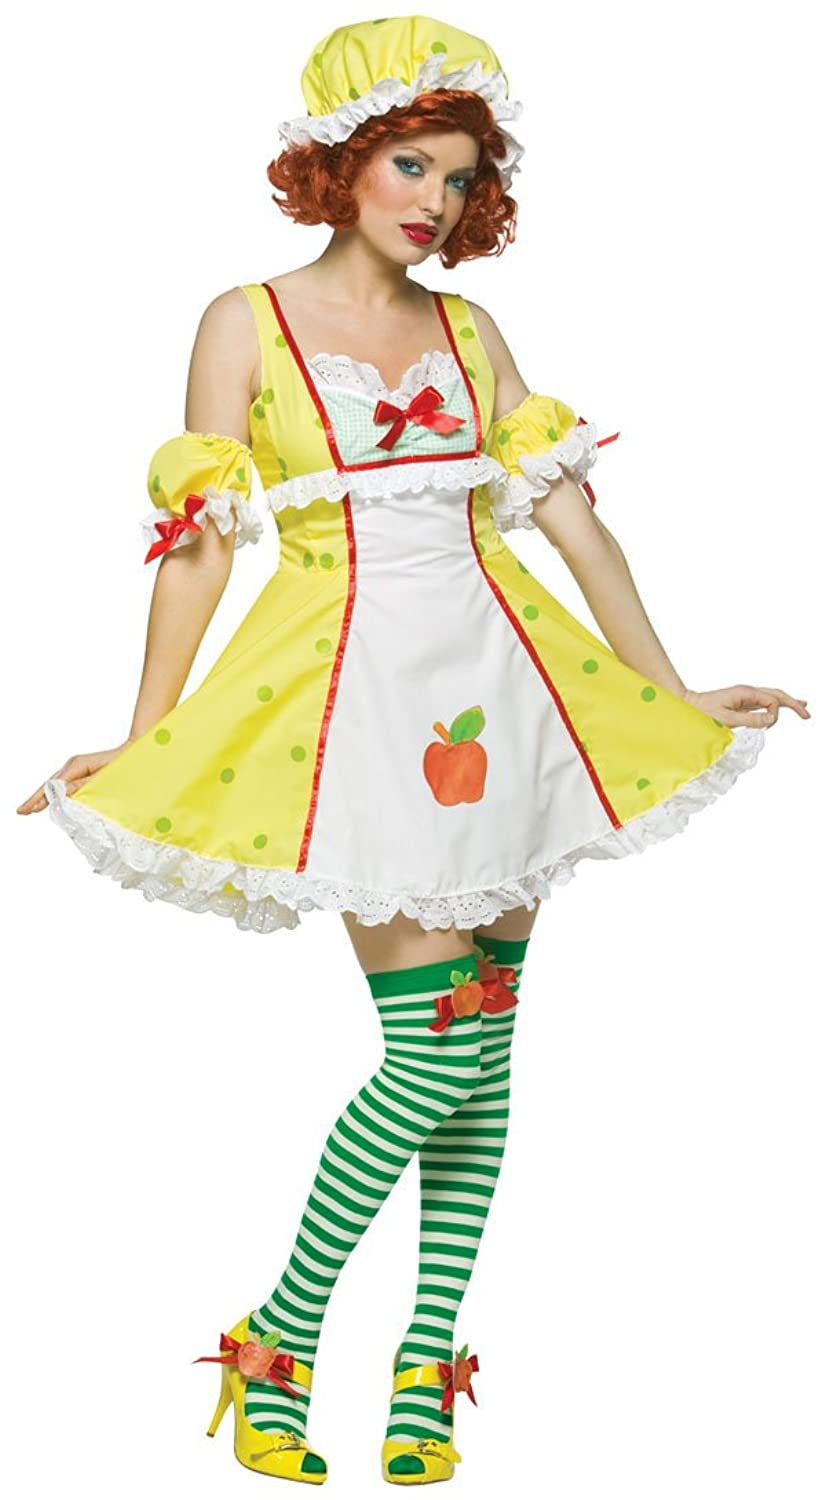 amazoncom adult sexy apple dumpling costume adult std clothing - Apple Halloween Costumes